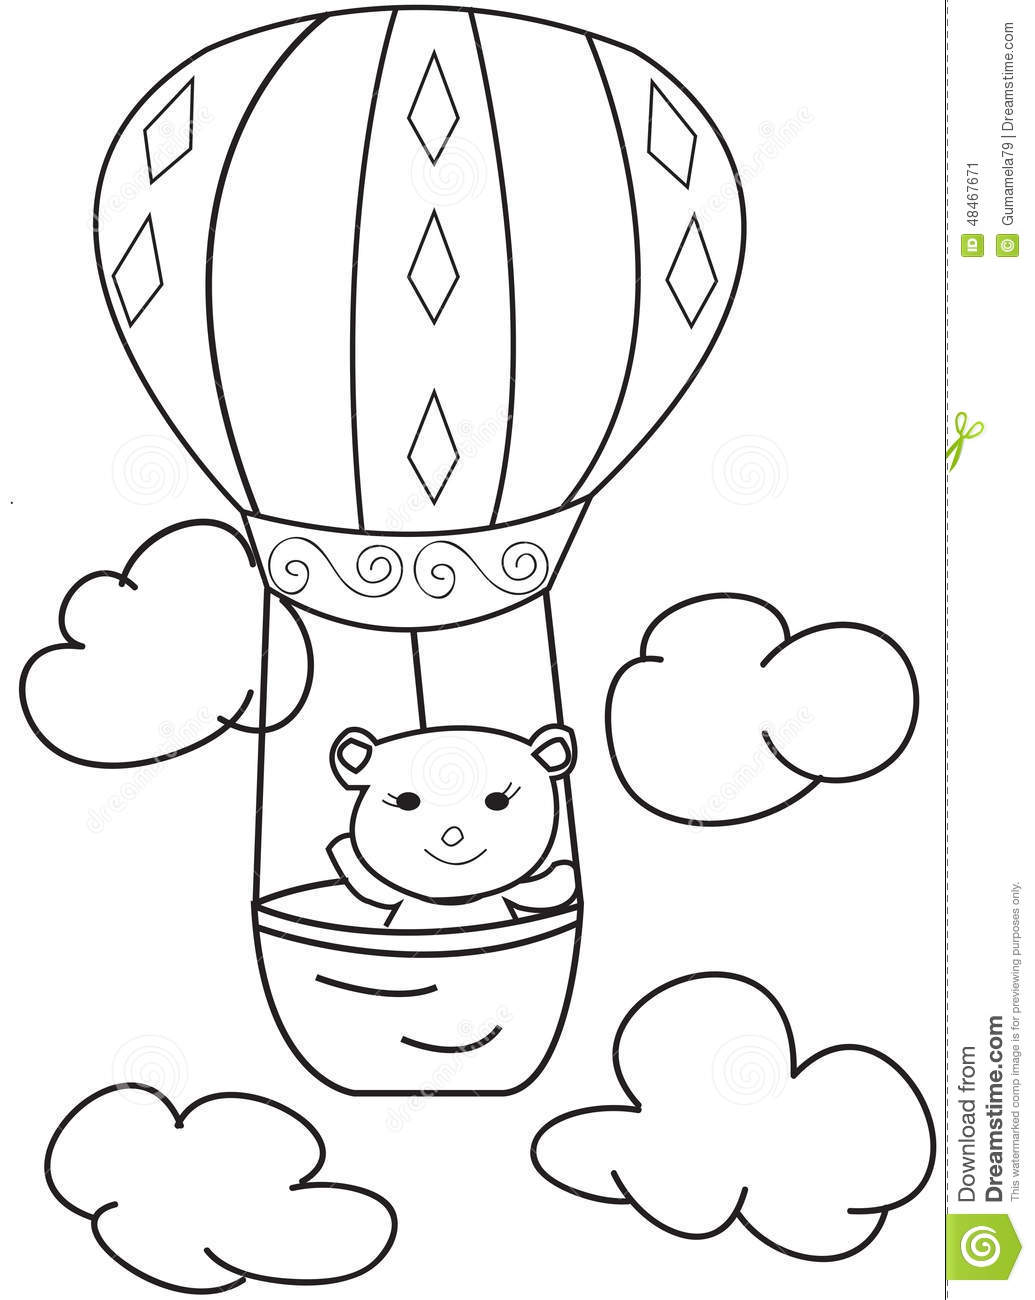 hand drawn sketch of a bear in a air balloon stock